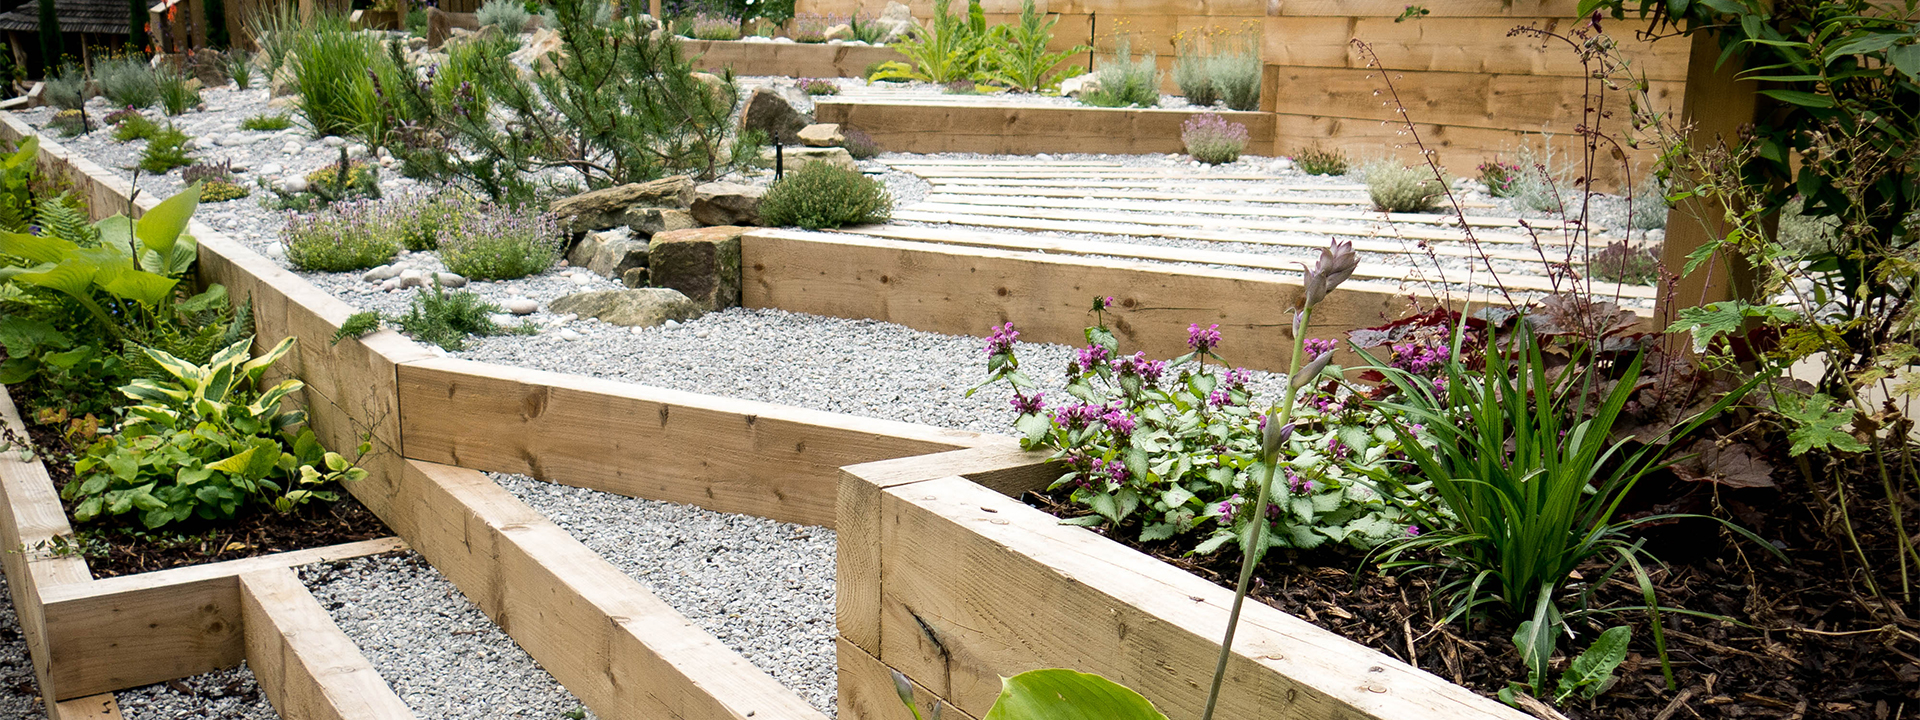 Sloping Garden Ideas | Yorkshire Gardens on Sloping Garden Ideas id=26850